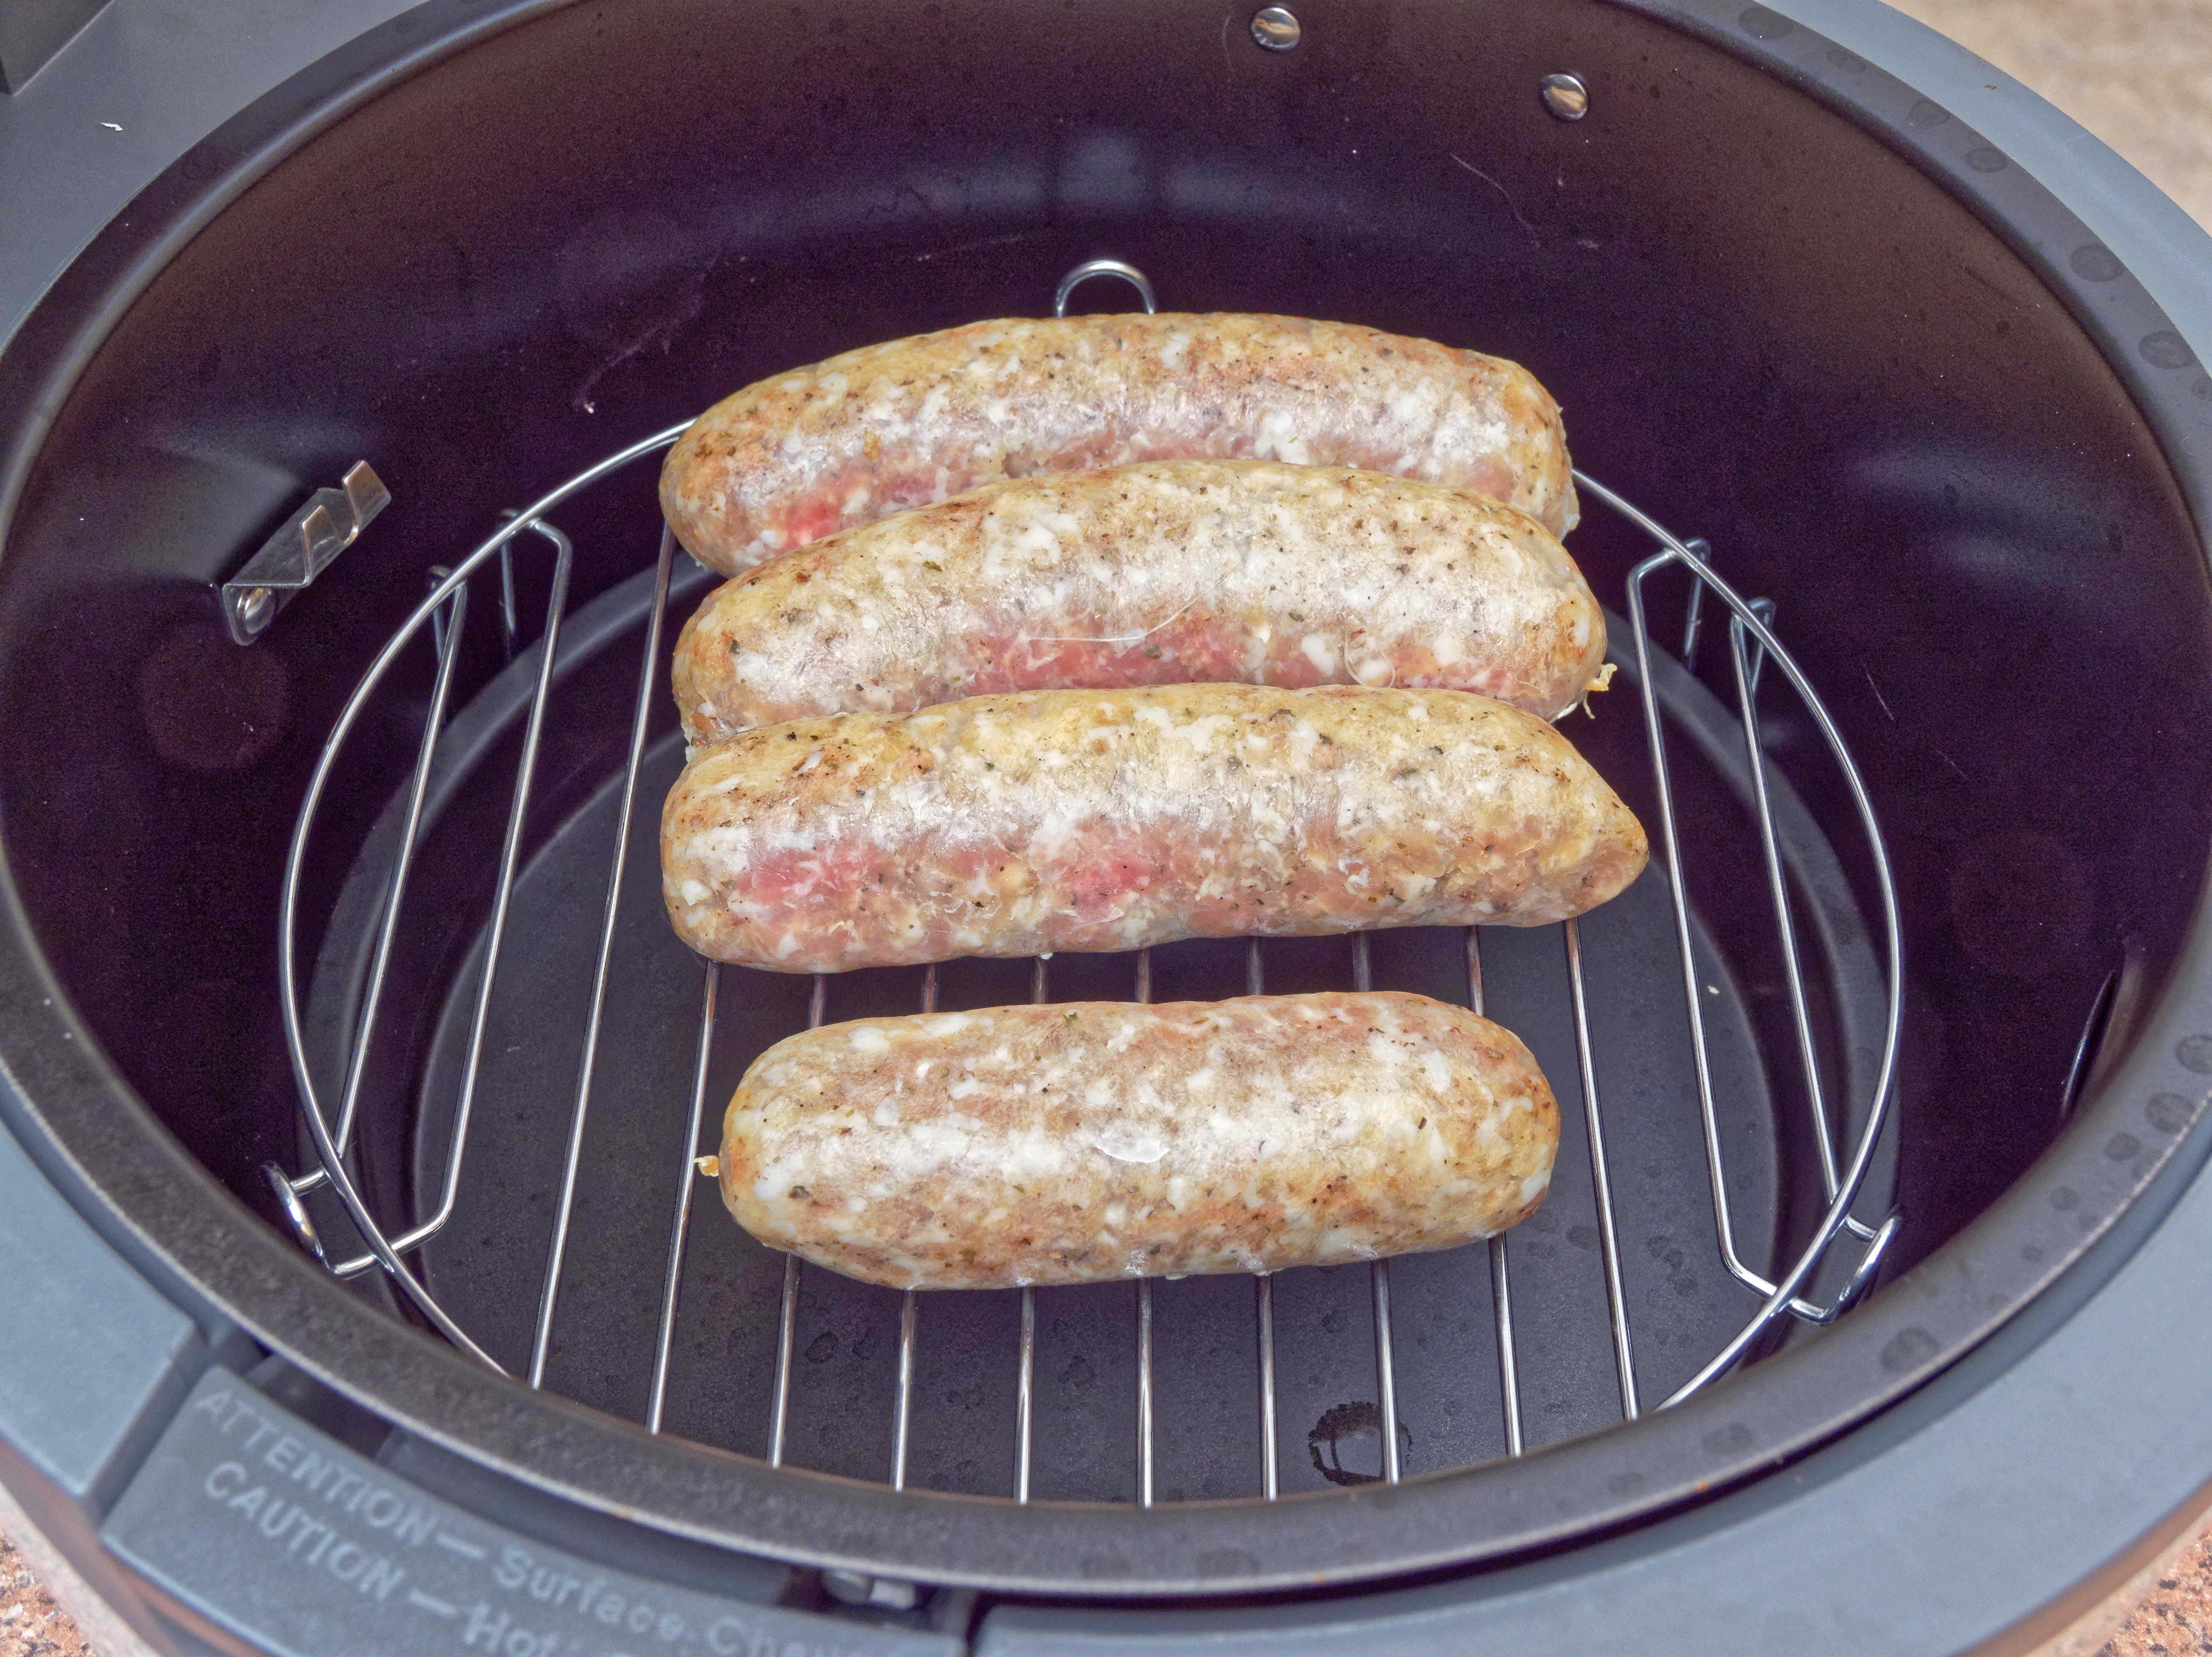 This should be Bratwurst-1.jpeg.  Is it missing?